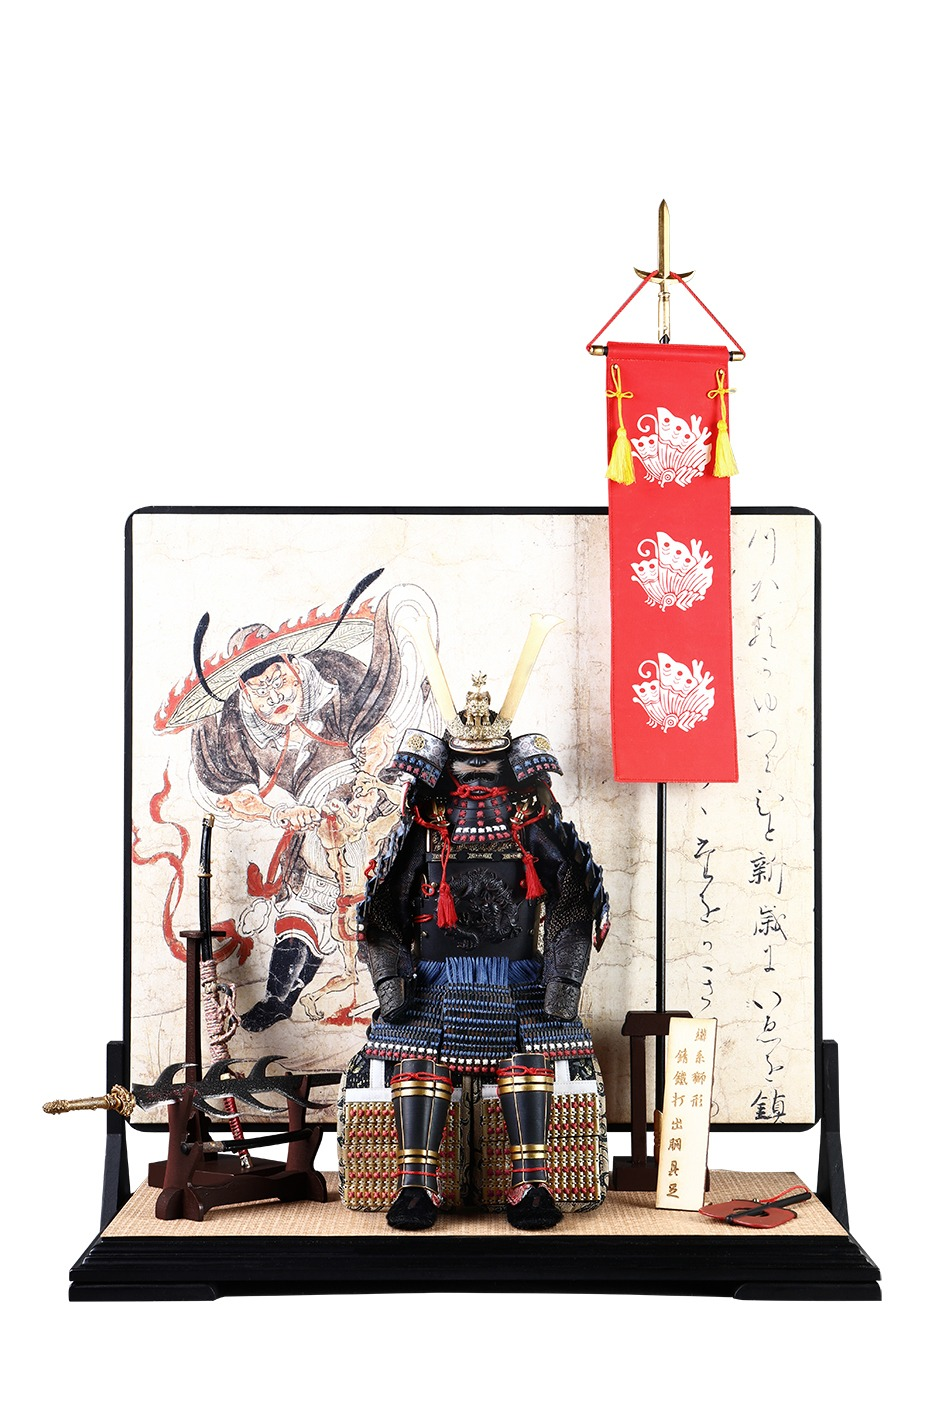 japanese - NEW PRODUCT: COOMODEL: 1/6 Empire Series Legendary Edition-Jin Xiaozha's Yellow Wife Takes Big Armor & 狮 Series Lion-shaped 锖 Iron Hit 19134110